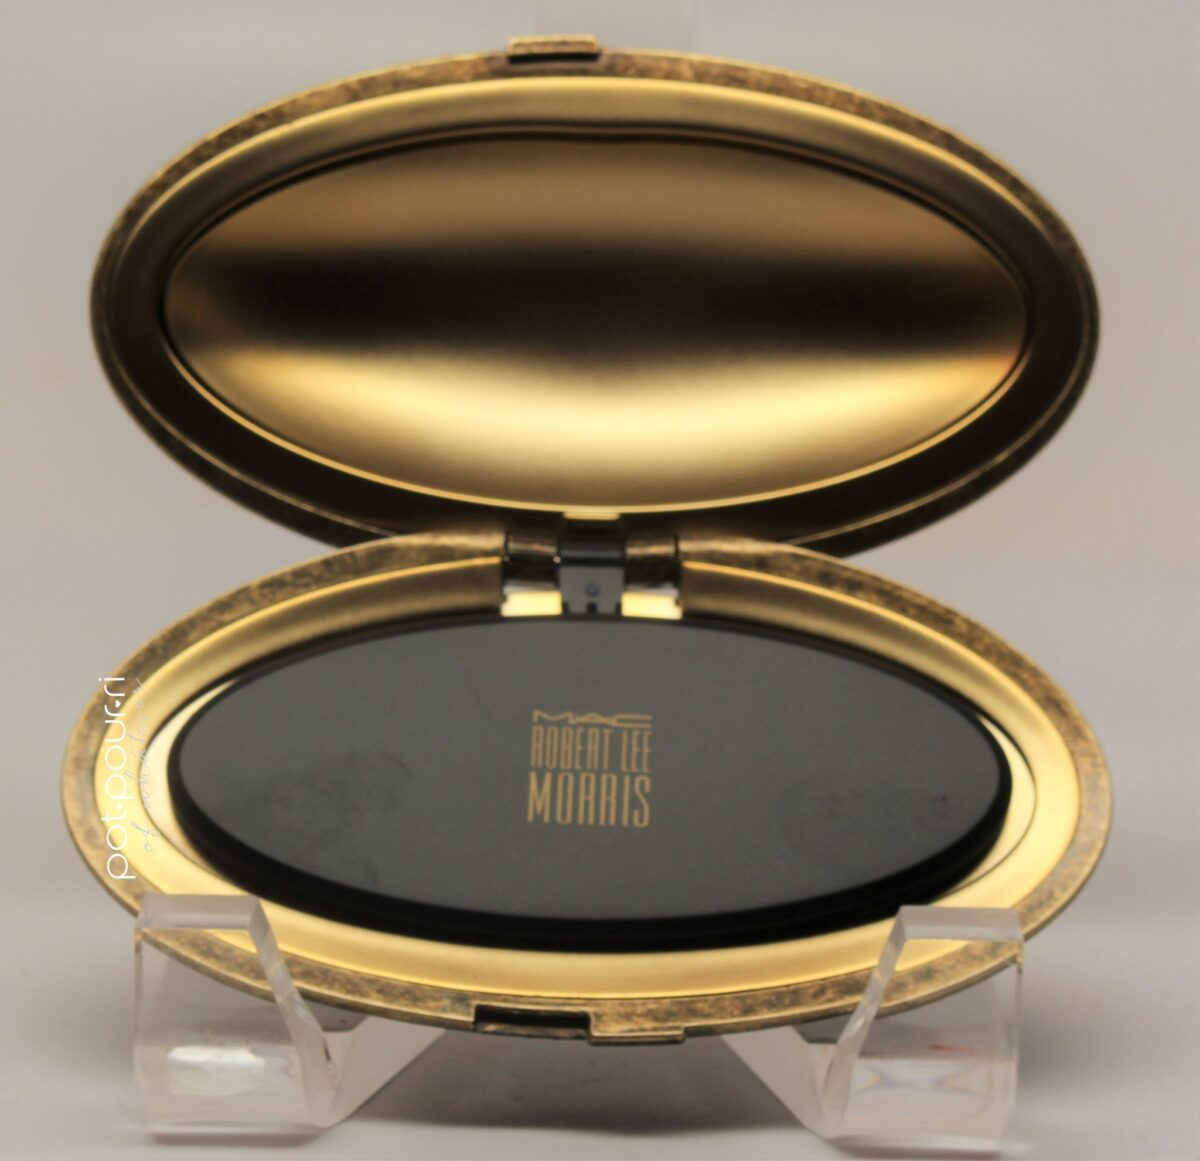 face powder compact opened